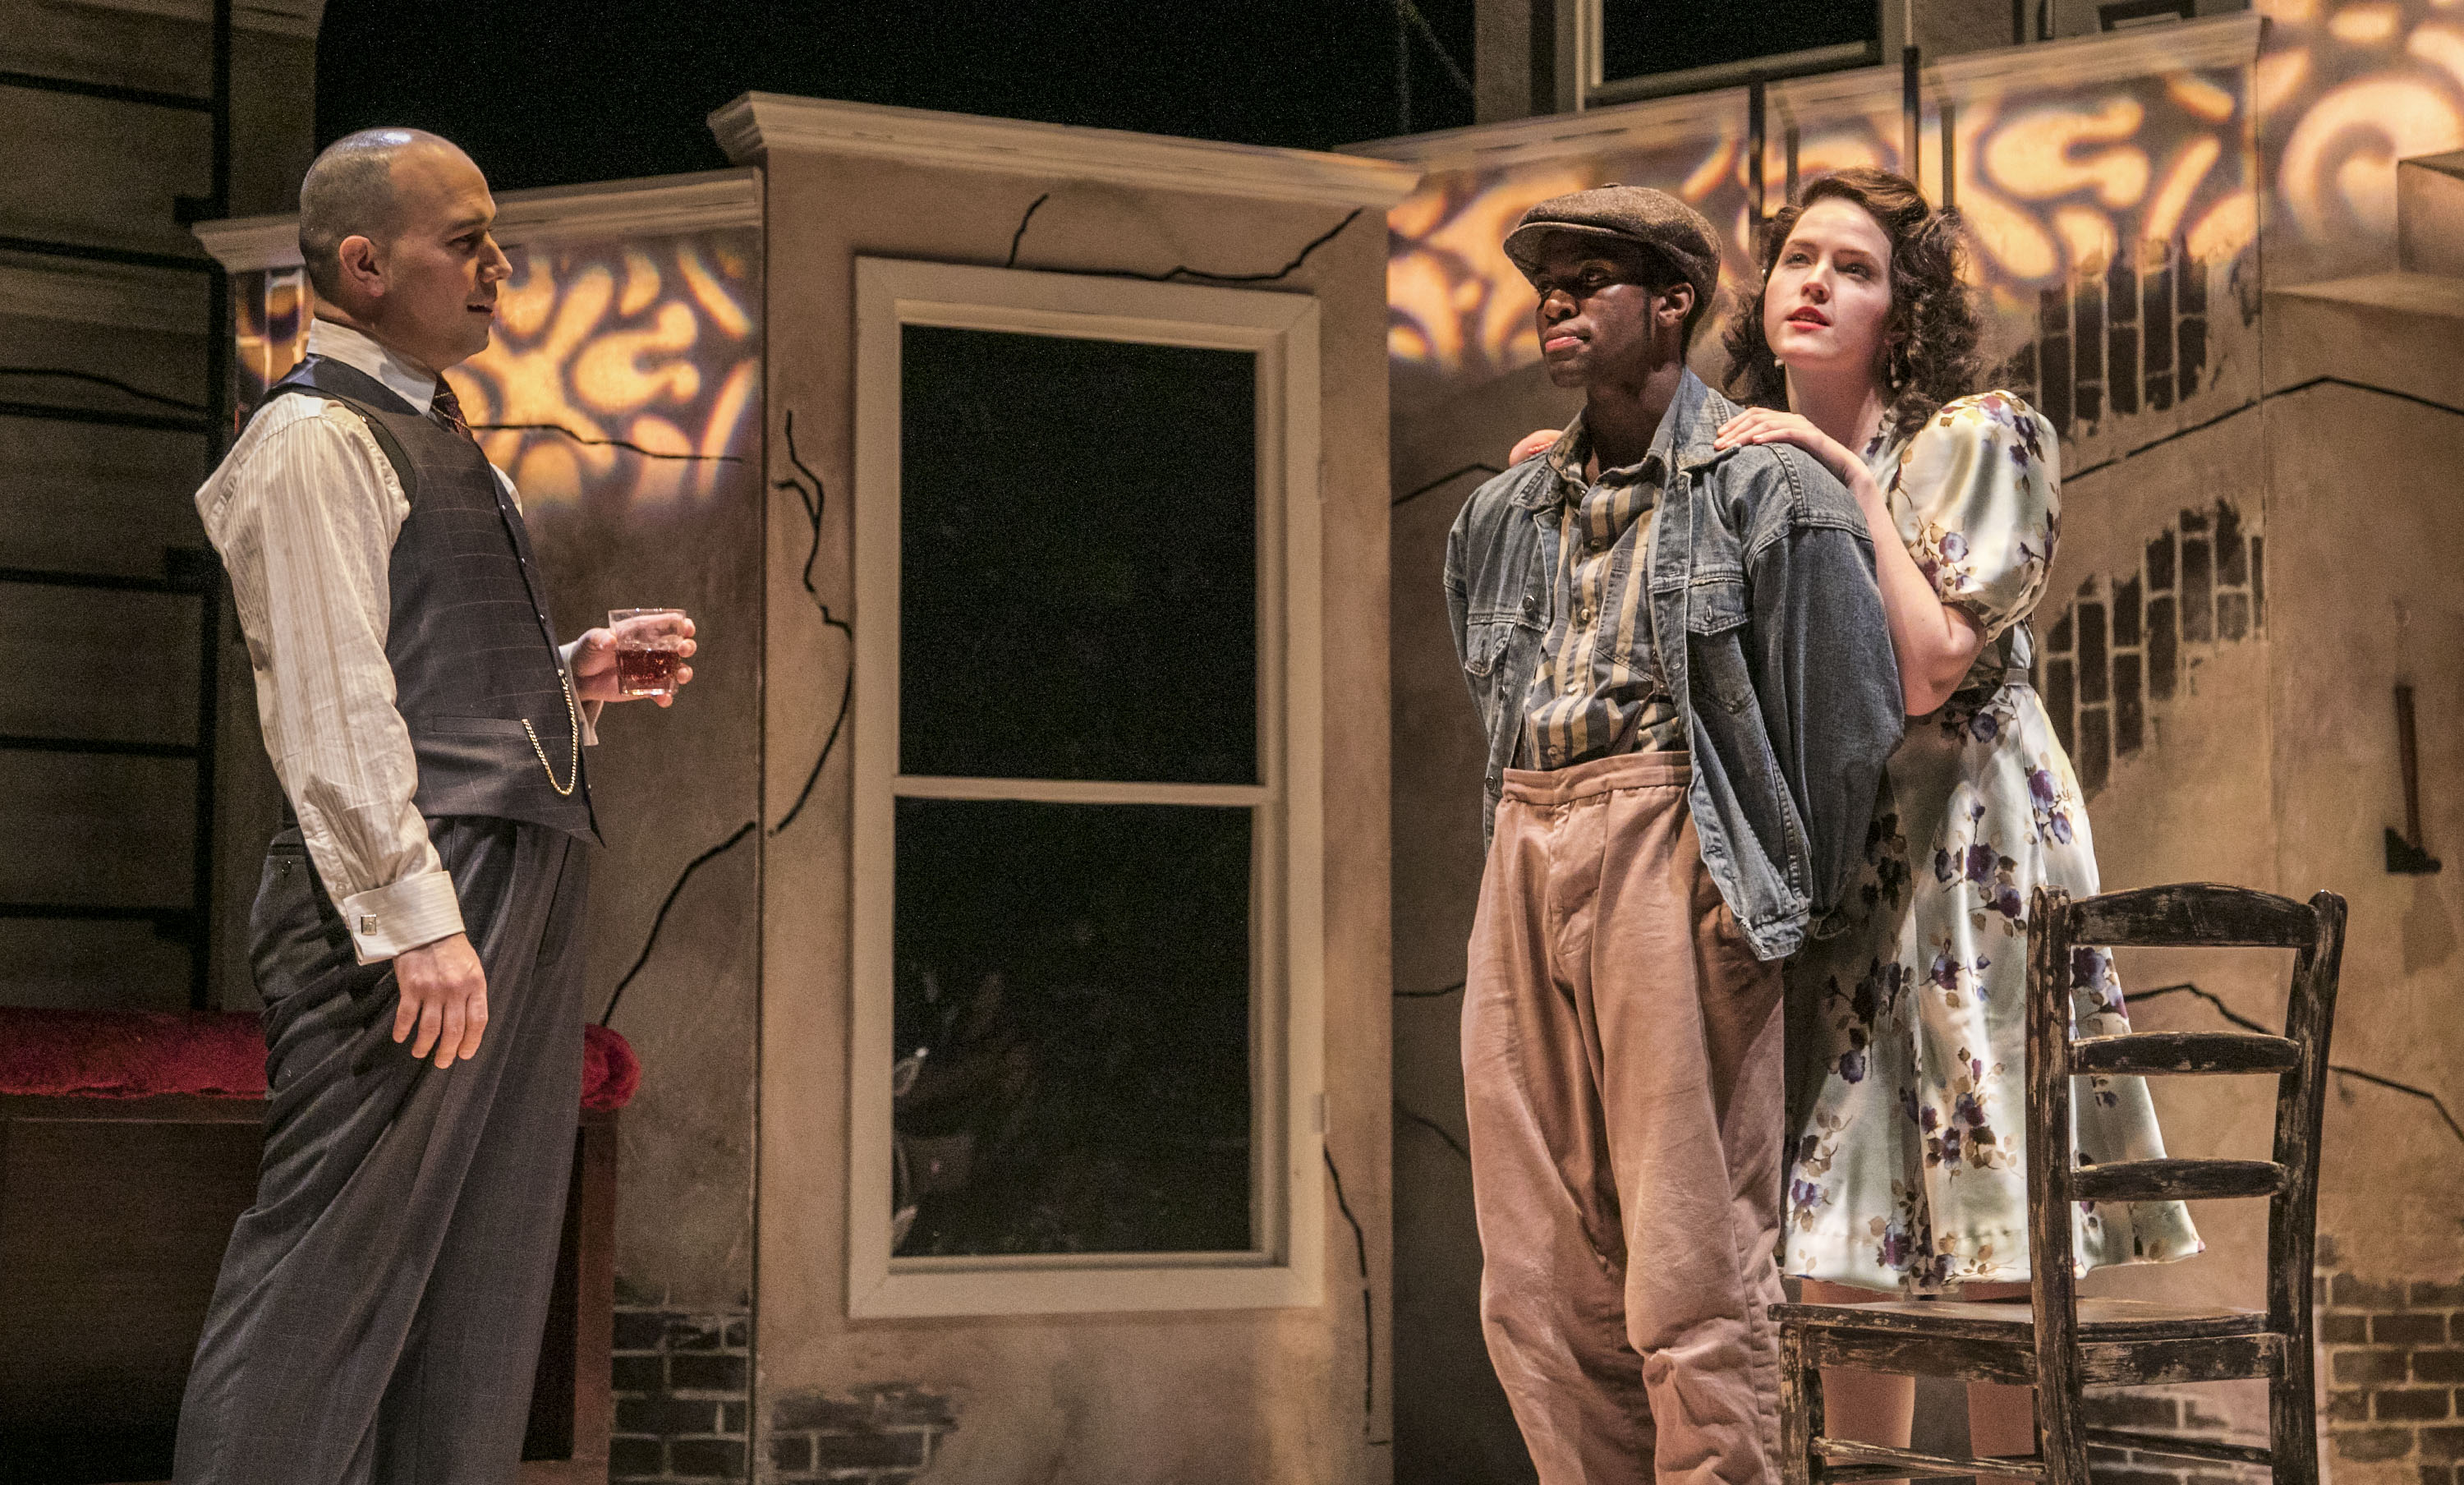 "Mary (Delany Feener) flirts with Bigger Thomas (Matthew James Elam) in front of her father, Mr. Dalton (Matthew Hannon), left, in a scene from The Theatre School's production of ""Native Son,"" currently playing on the Fullerton Stage Feb. 9-18, 2018. Set in 1930s South Side Chicago, Bigger Thomas lands a job with a wealthy white family, but his fate is sealed when a violent act unleashes a chain of events that cannot be undone. The play, based on the novel by Richard Wright, is directed by DePaul graduate student Mikael Burke, and explores the systemic racism and poverty that oppressed Bigger Thomas from birth. (DePaul University/Jamie Moncrief)"